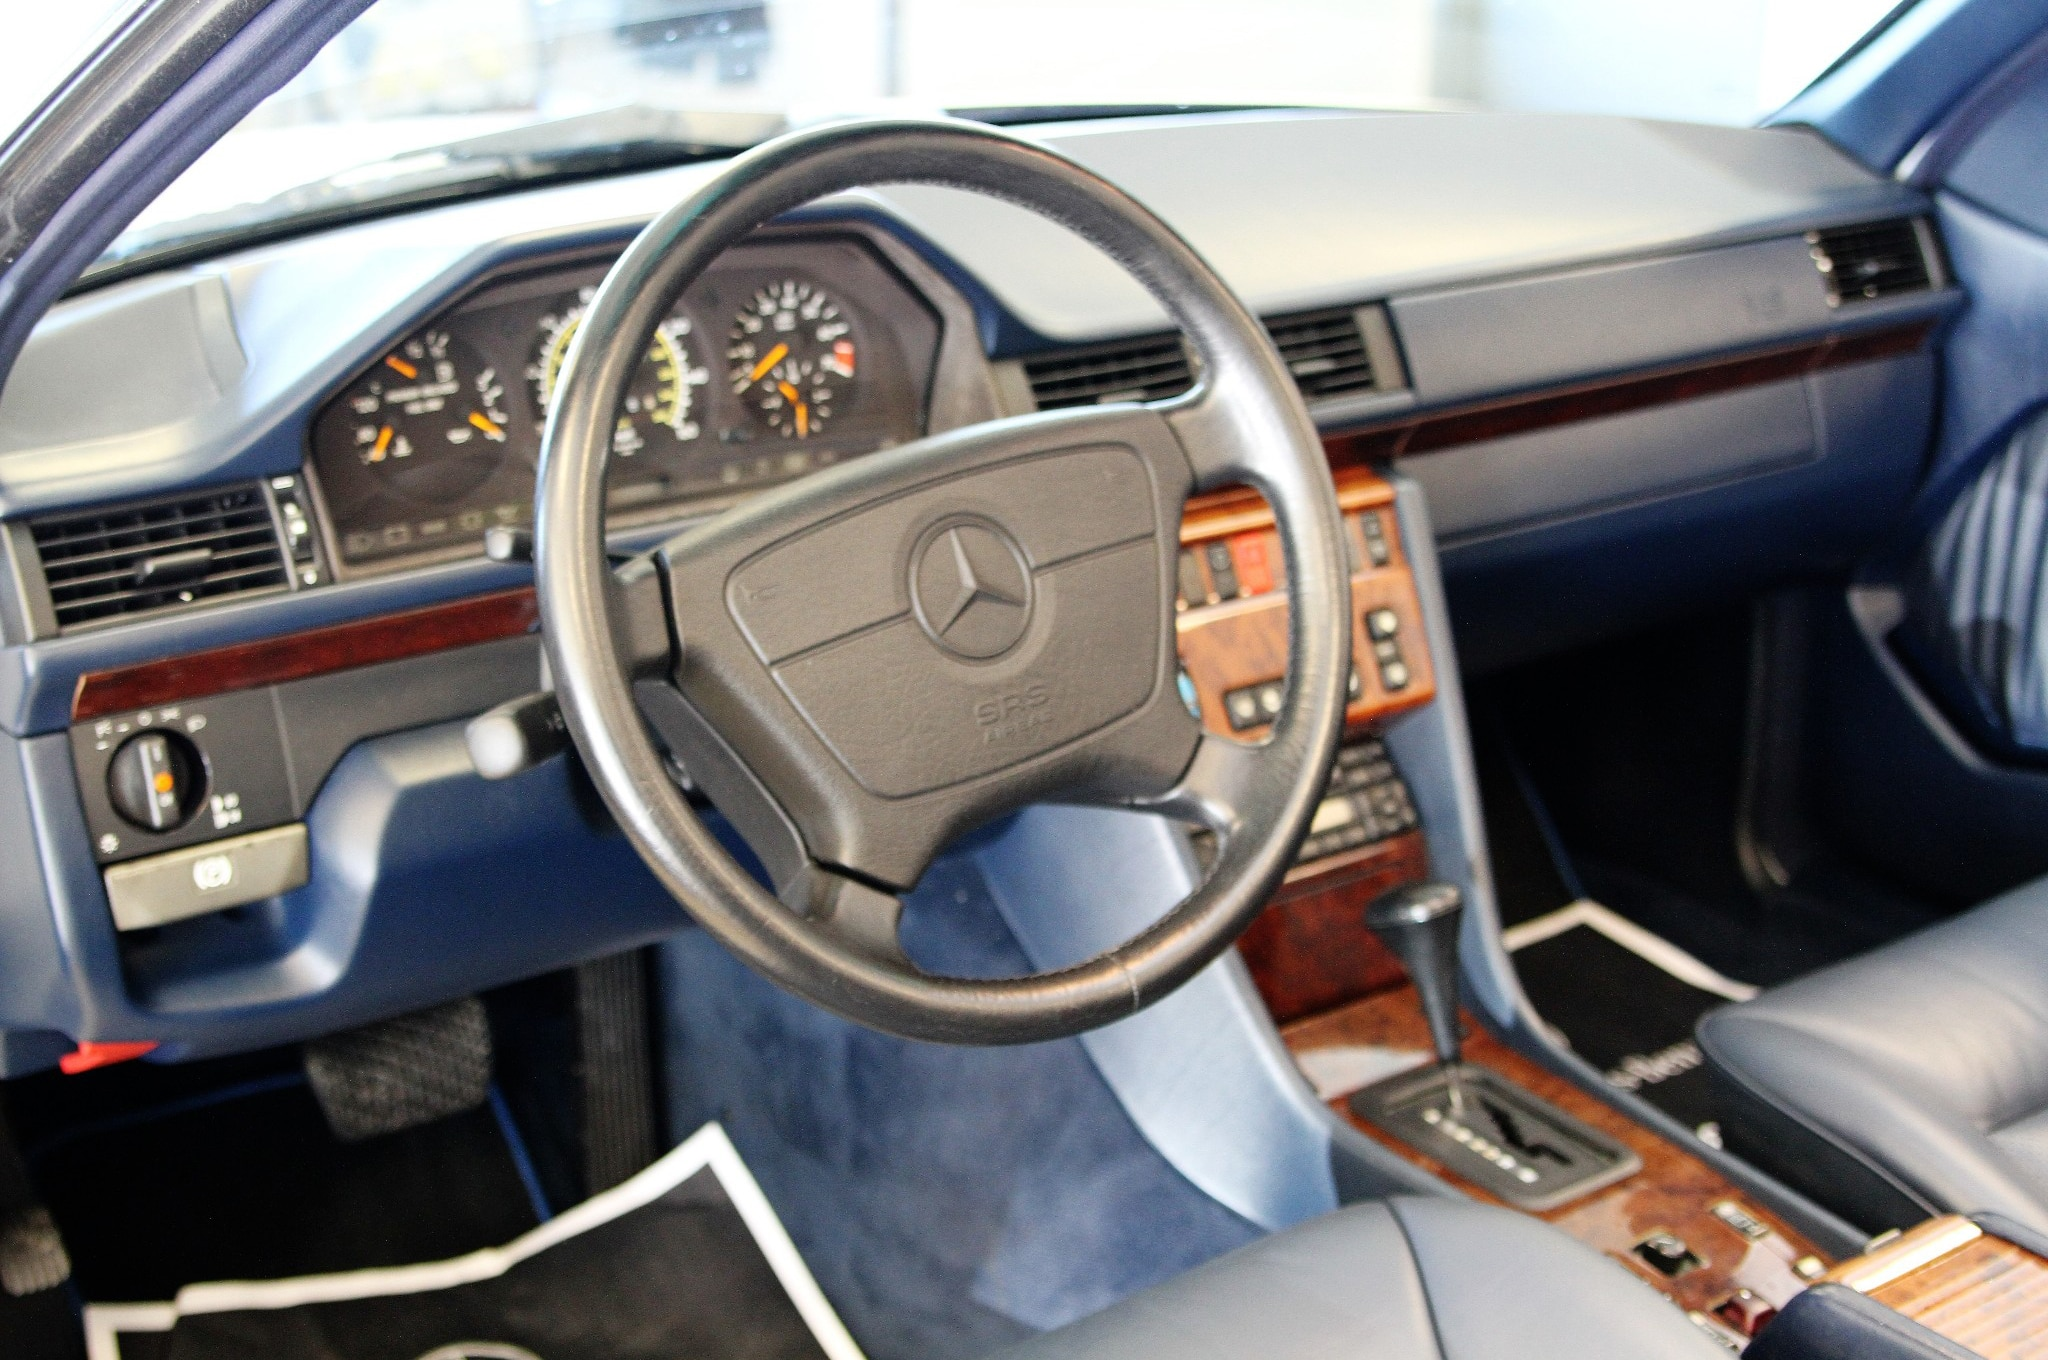 Just listed 51 000 mile 1995 mercedes benz e320 cabriolet for Mercedes benz e350 interior